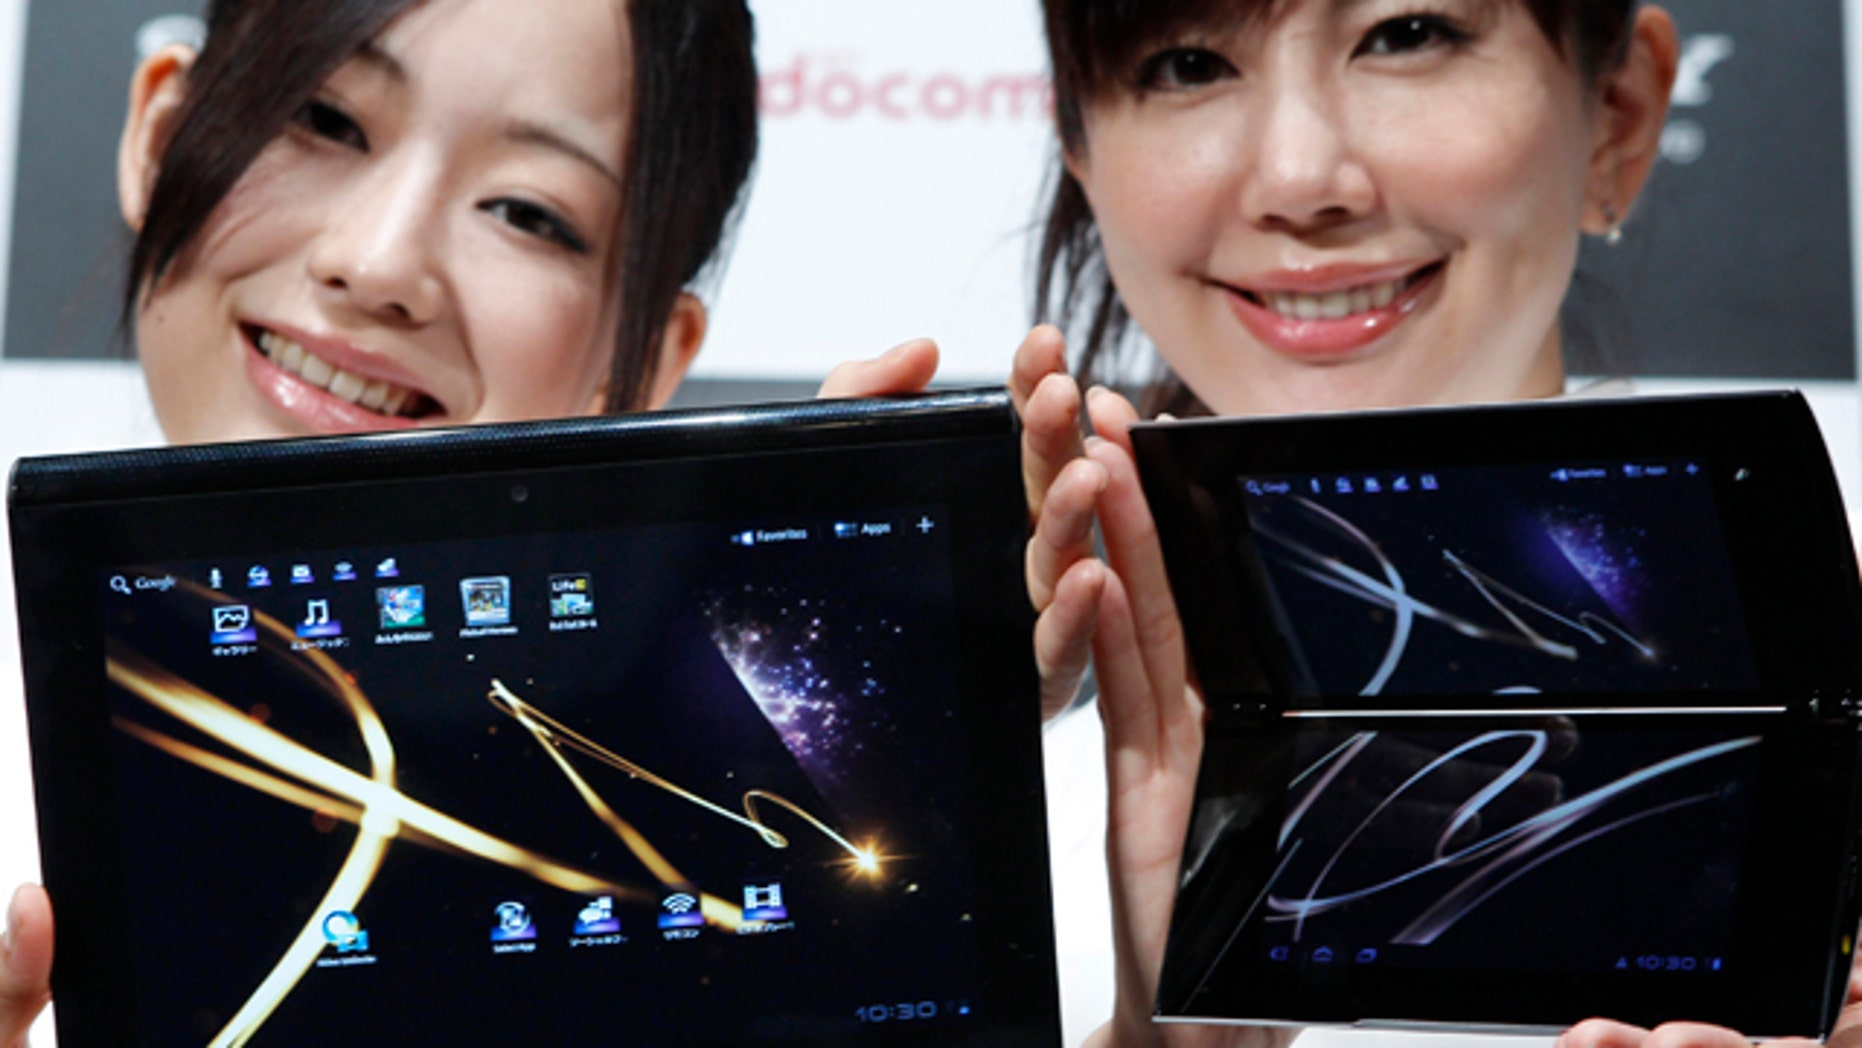 Sept. 1, 2011: Models show off Sony's new tablet computers, Tablet S, left, and Tablet P during a launch event in Tokyo. The wedge-shaped Tablet S, about the size of an iPad, can double as a universal remote control while the Tablet P opens like a book to reveal two screens.